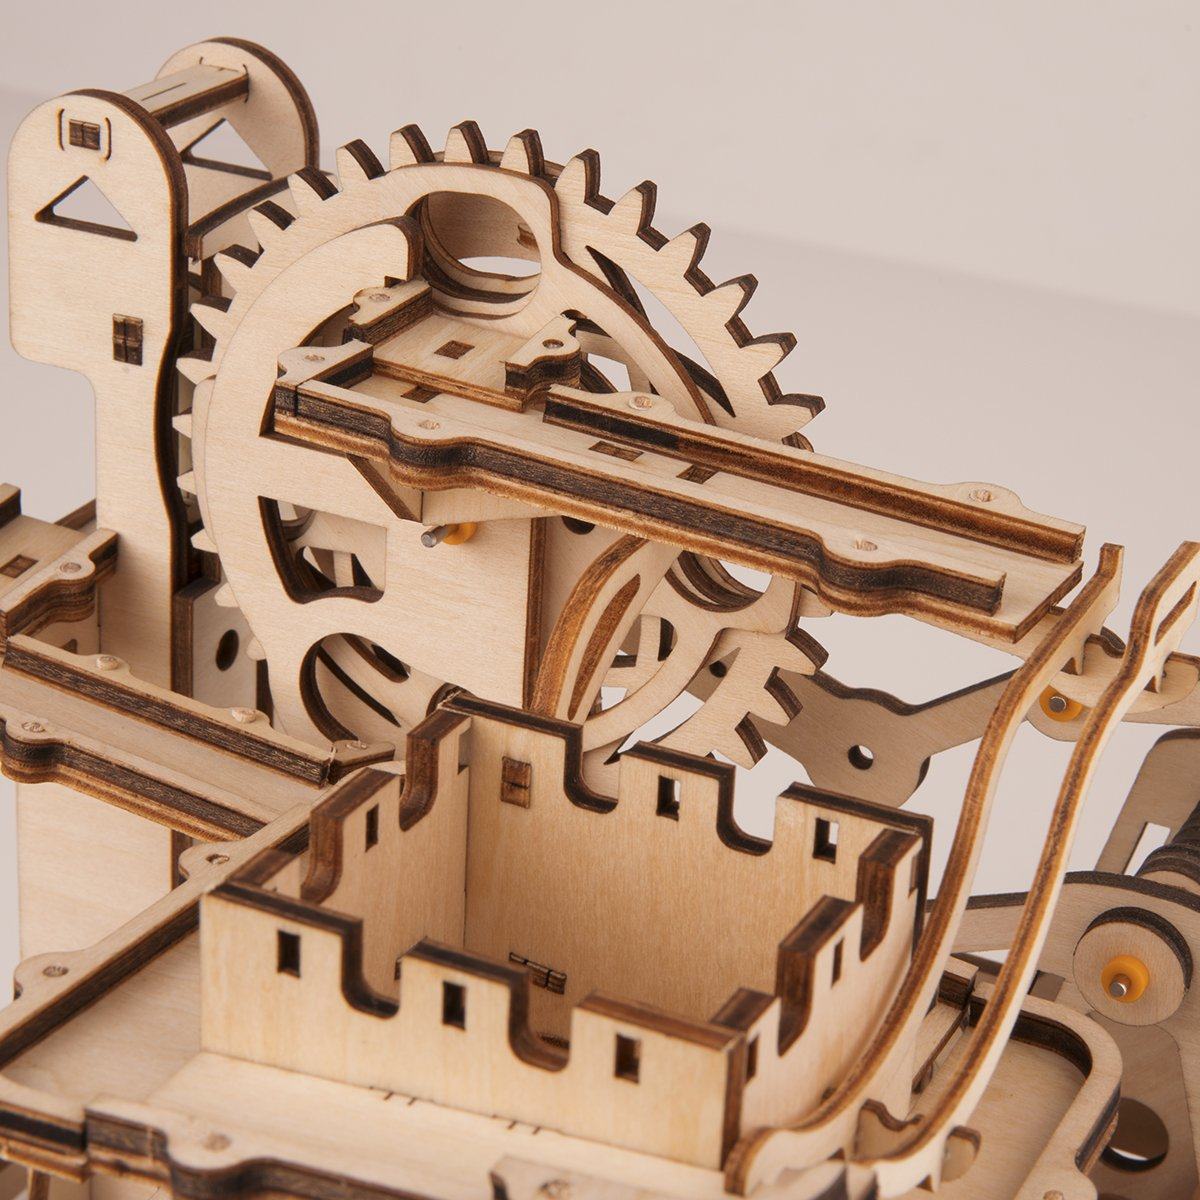 ROBOTIME 3D Wooden Puzzle Brain Teaser Toys Mechanical Gears Kit Unique Craft Kits Tower Coaster with Steel Balls Executive Desk Toys Best Gifts for Adults and Kids by ROBOTIME (Image #5)